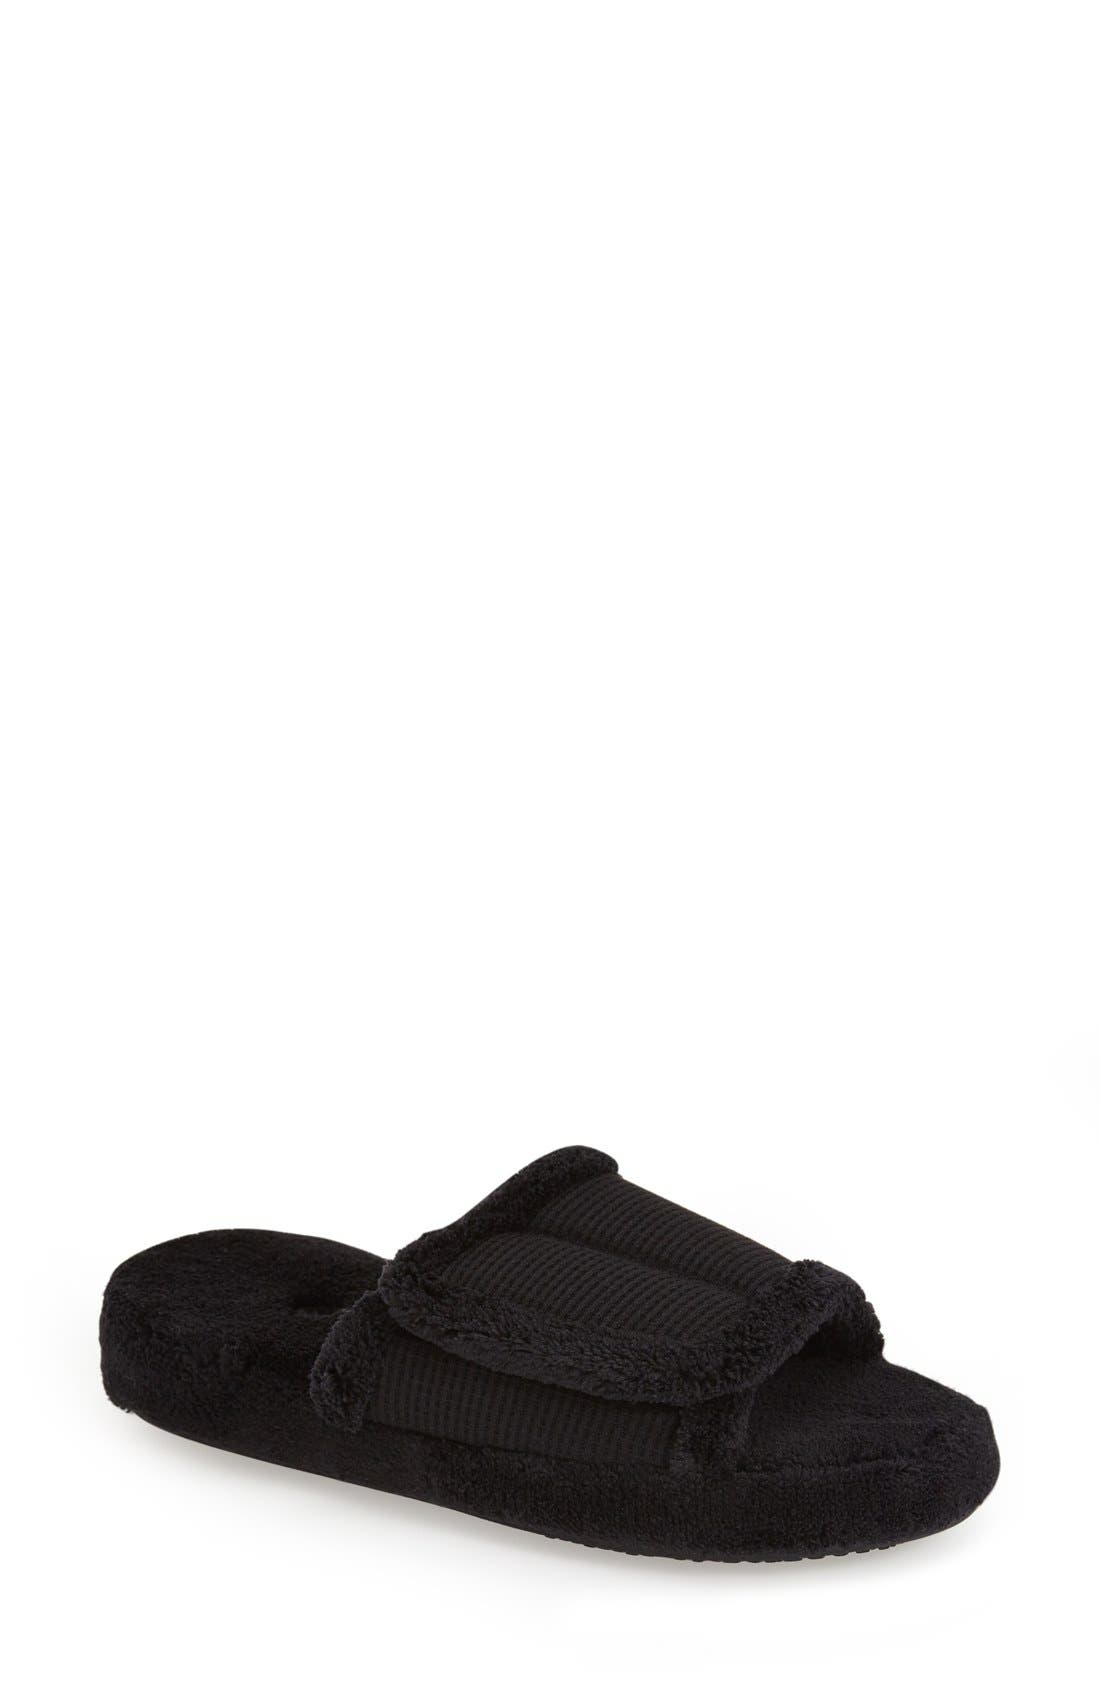 ACORN 'Waffle Spa Slide' Slipper in Black